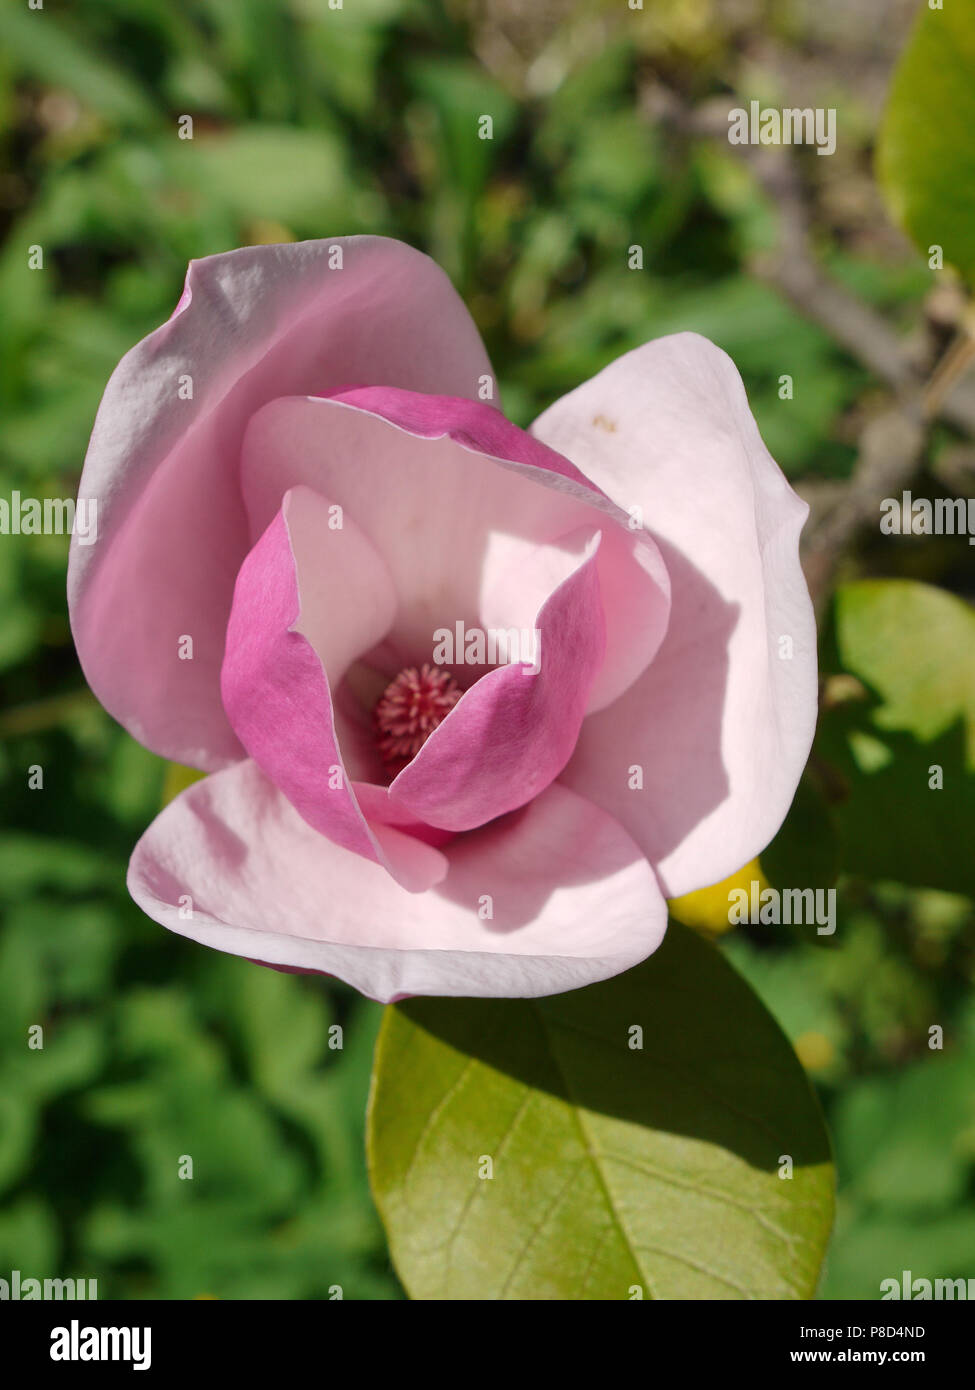 A Beautiful Big Flower With Lush Huge Pink Petals And Smooth Green